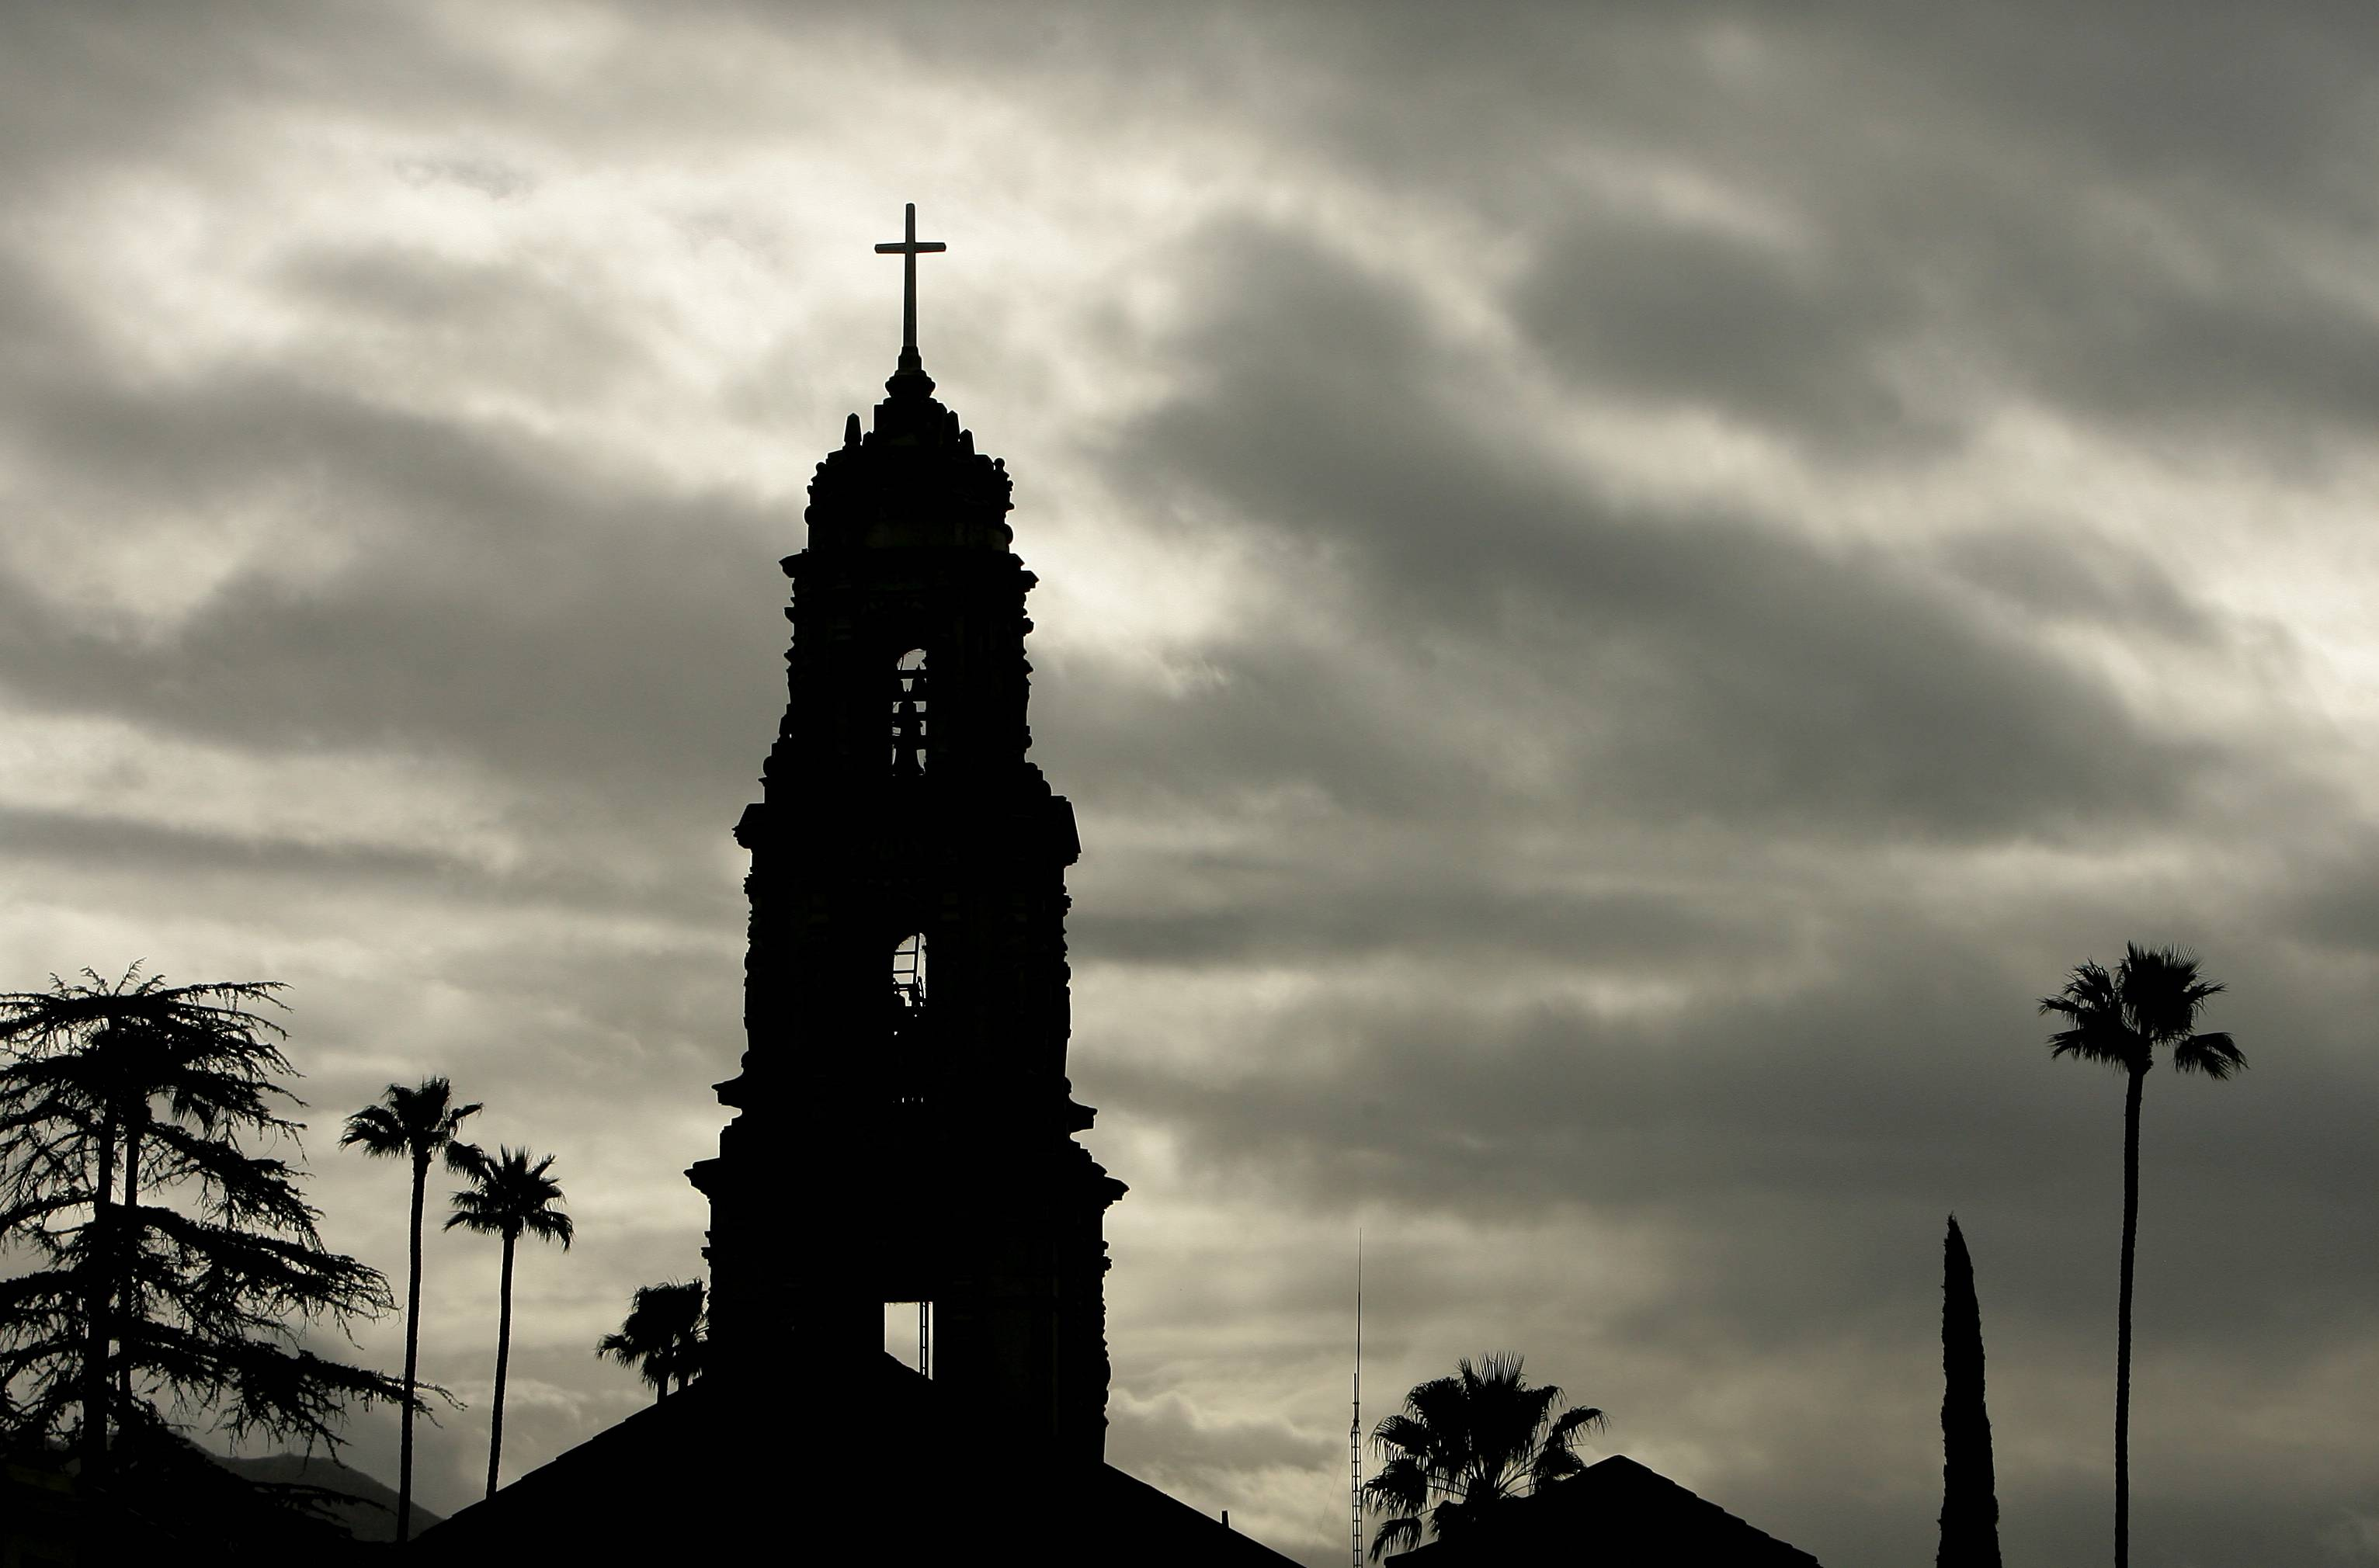 The bell tower at First Congregational Church in downtown Riverside, Calif. is silhouetted Saturday against cloudy skies.